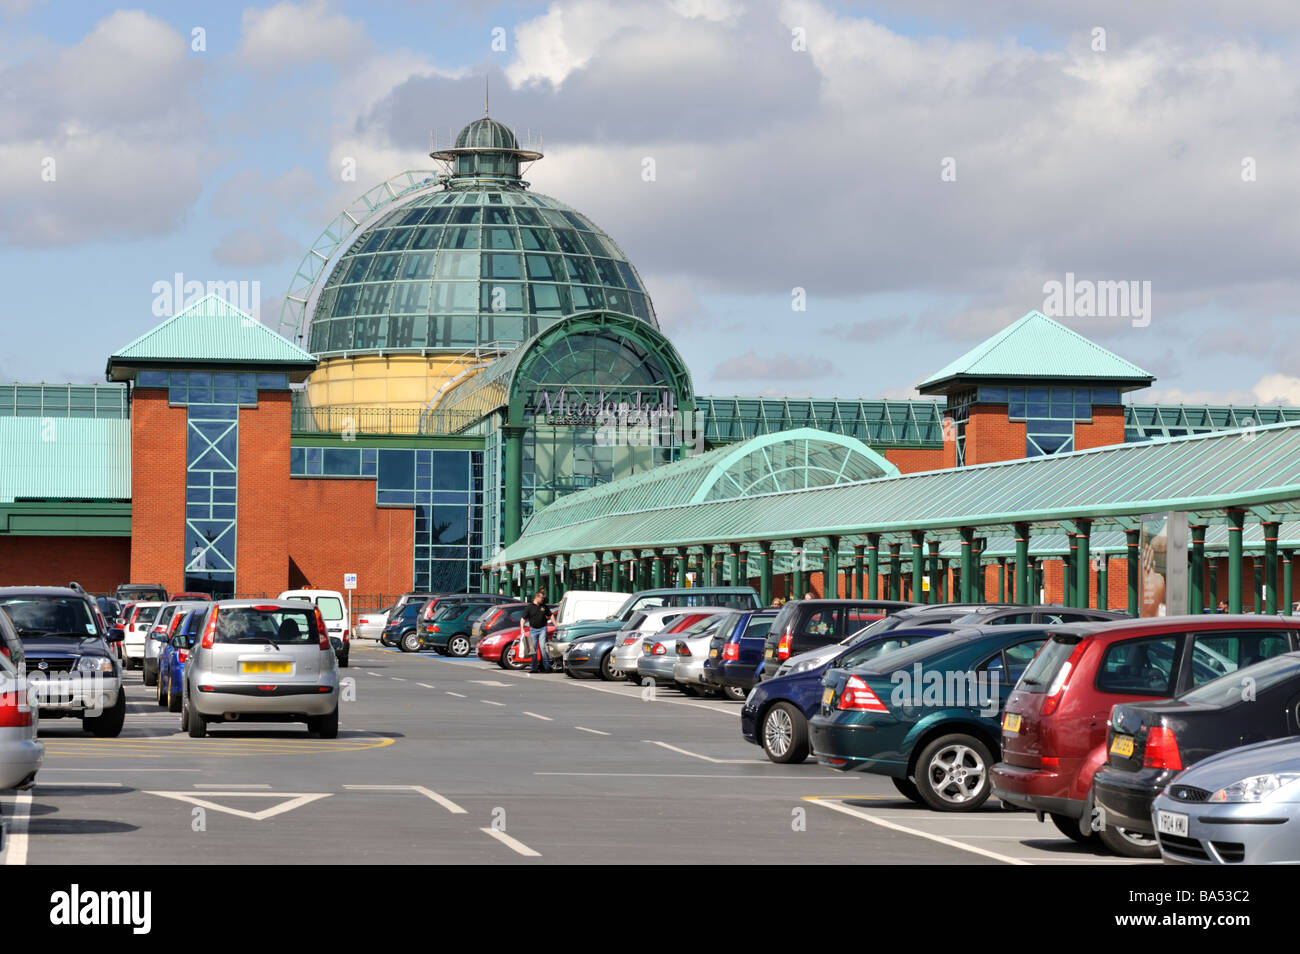 Meadowhall Sheffield Car Parking